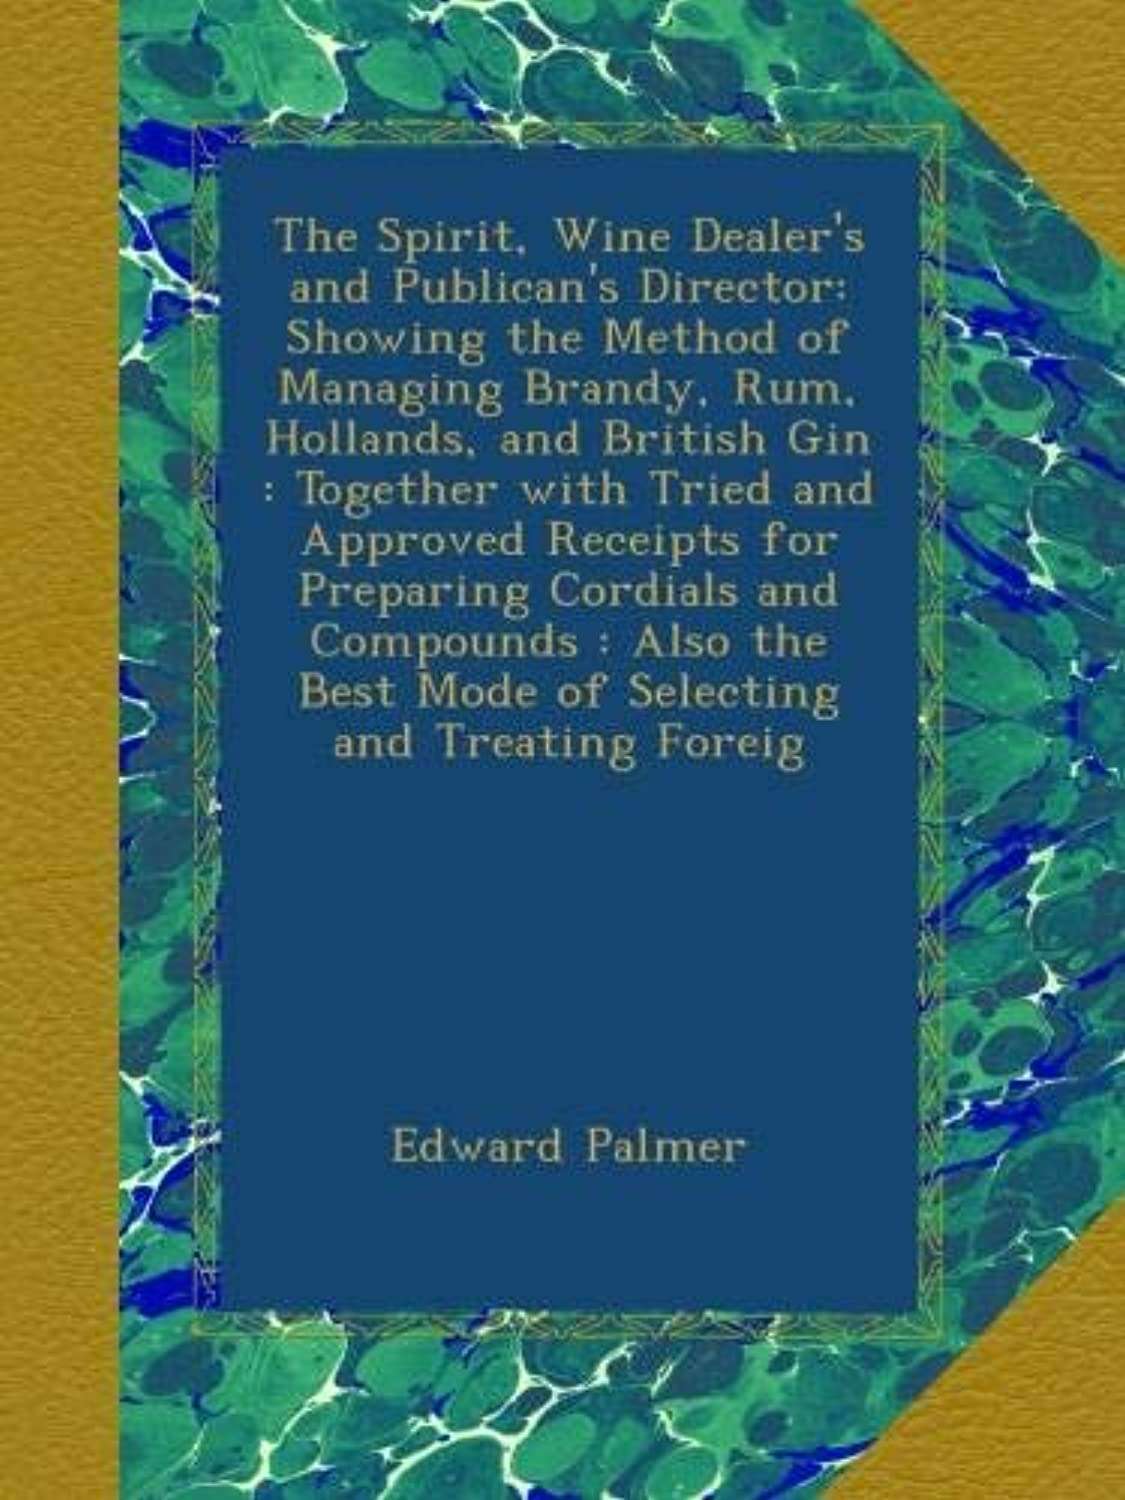 The Spirit, Wine Dealer's and Publican's Director: Showing the Method of Managing Brandy, Rum, Hollands, and British Gin : Together with Tried and Approved Receipts for Preparing Cordials and Compounds : Also the Best Mode of Selecting and Treating Foreig